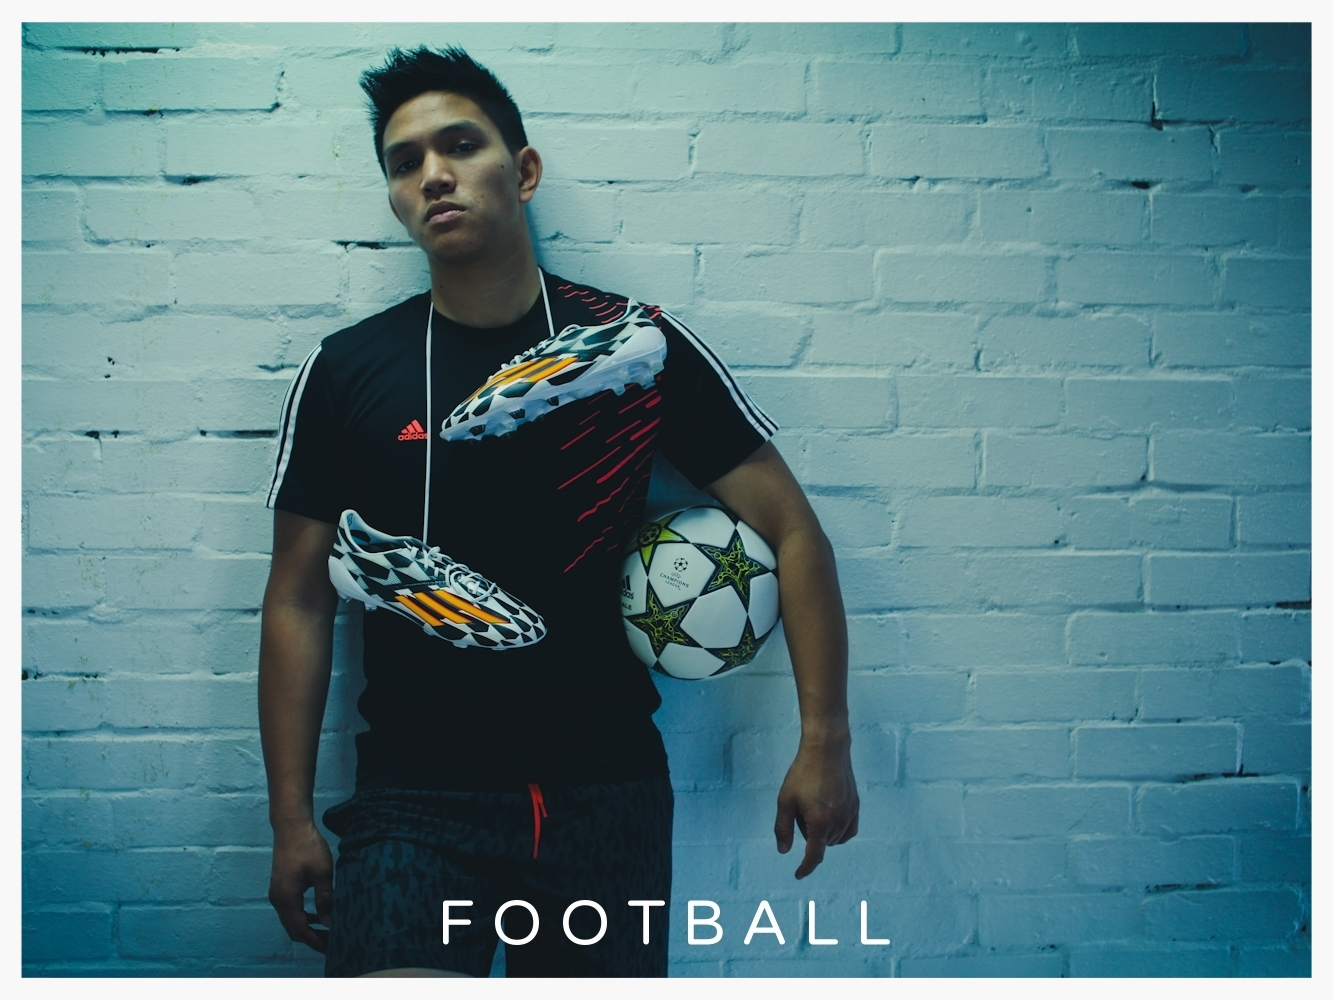 I've been football mad since before I could even walk! I'm also a professional football freestyler and former UK Champion. And yes, I  can  play 11-a-side! You can see some of my skills on Disney XD's  Goalmouth.